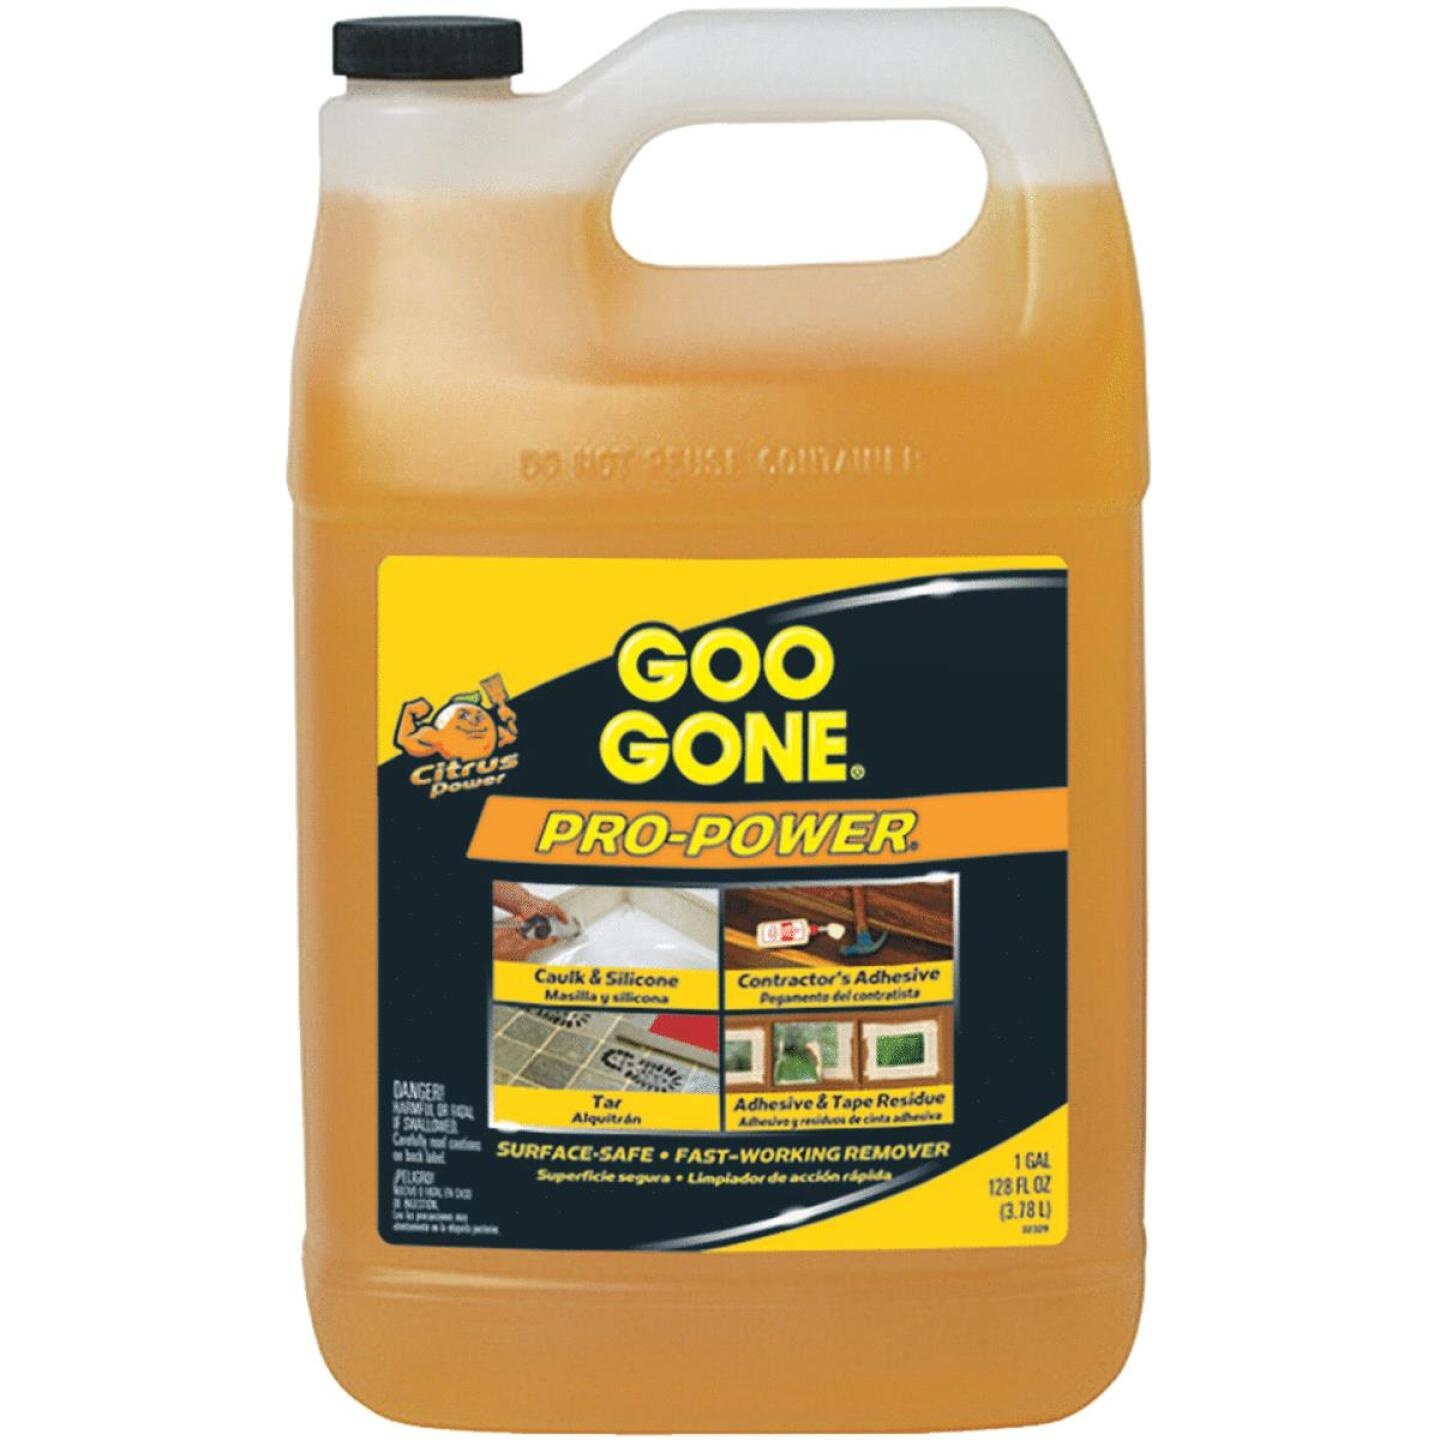 Goo Gone 1 Gal. Pro-Power Adhesive Remover Image 209